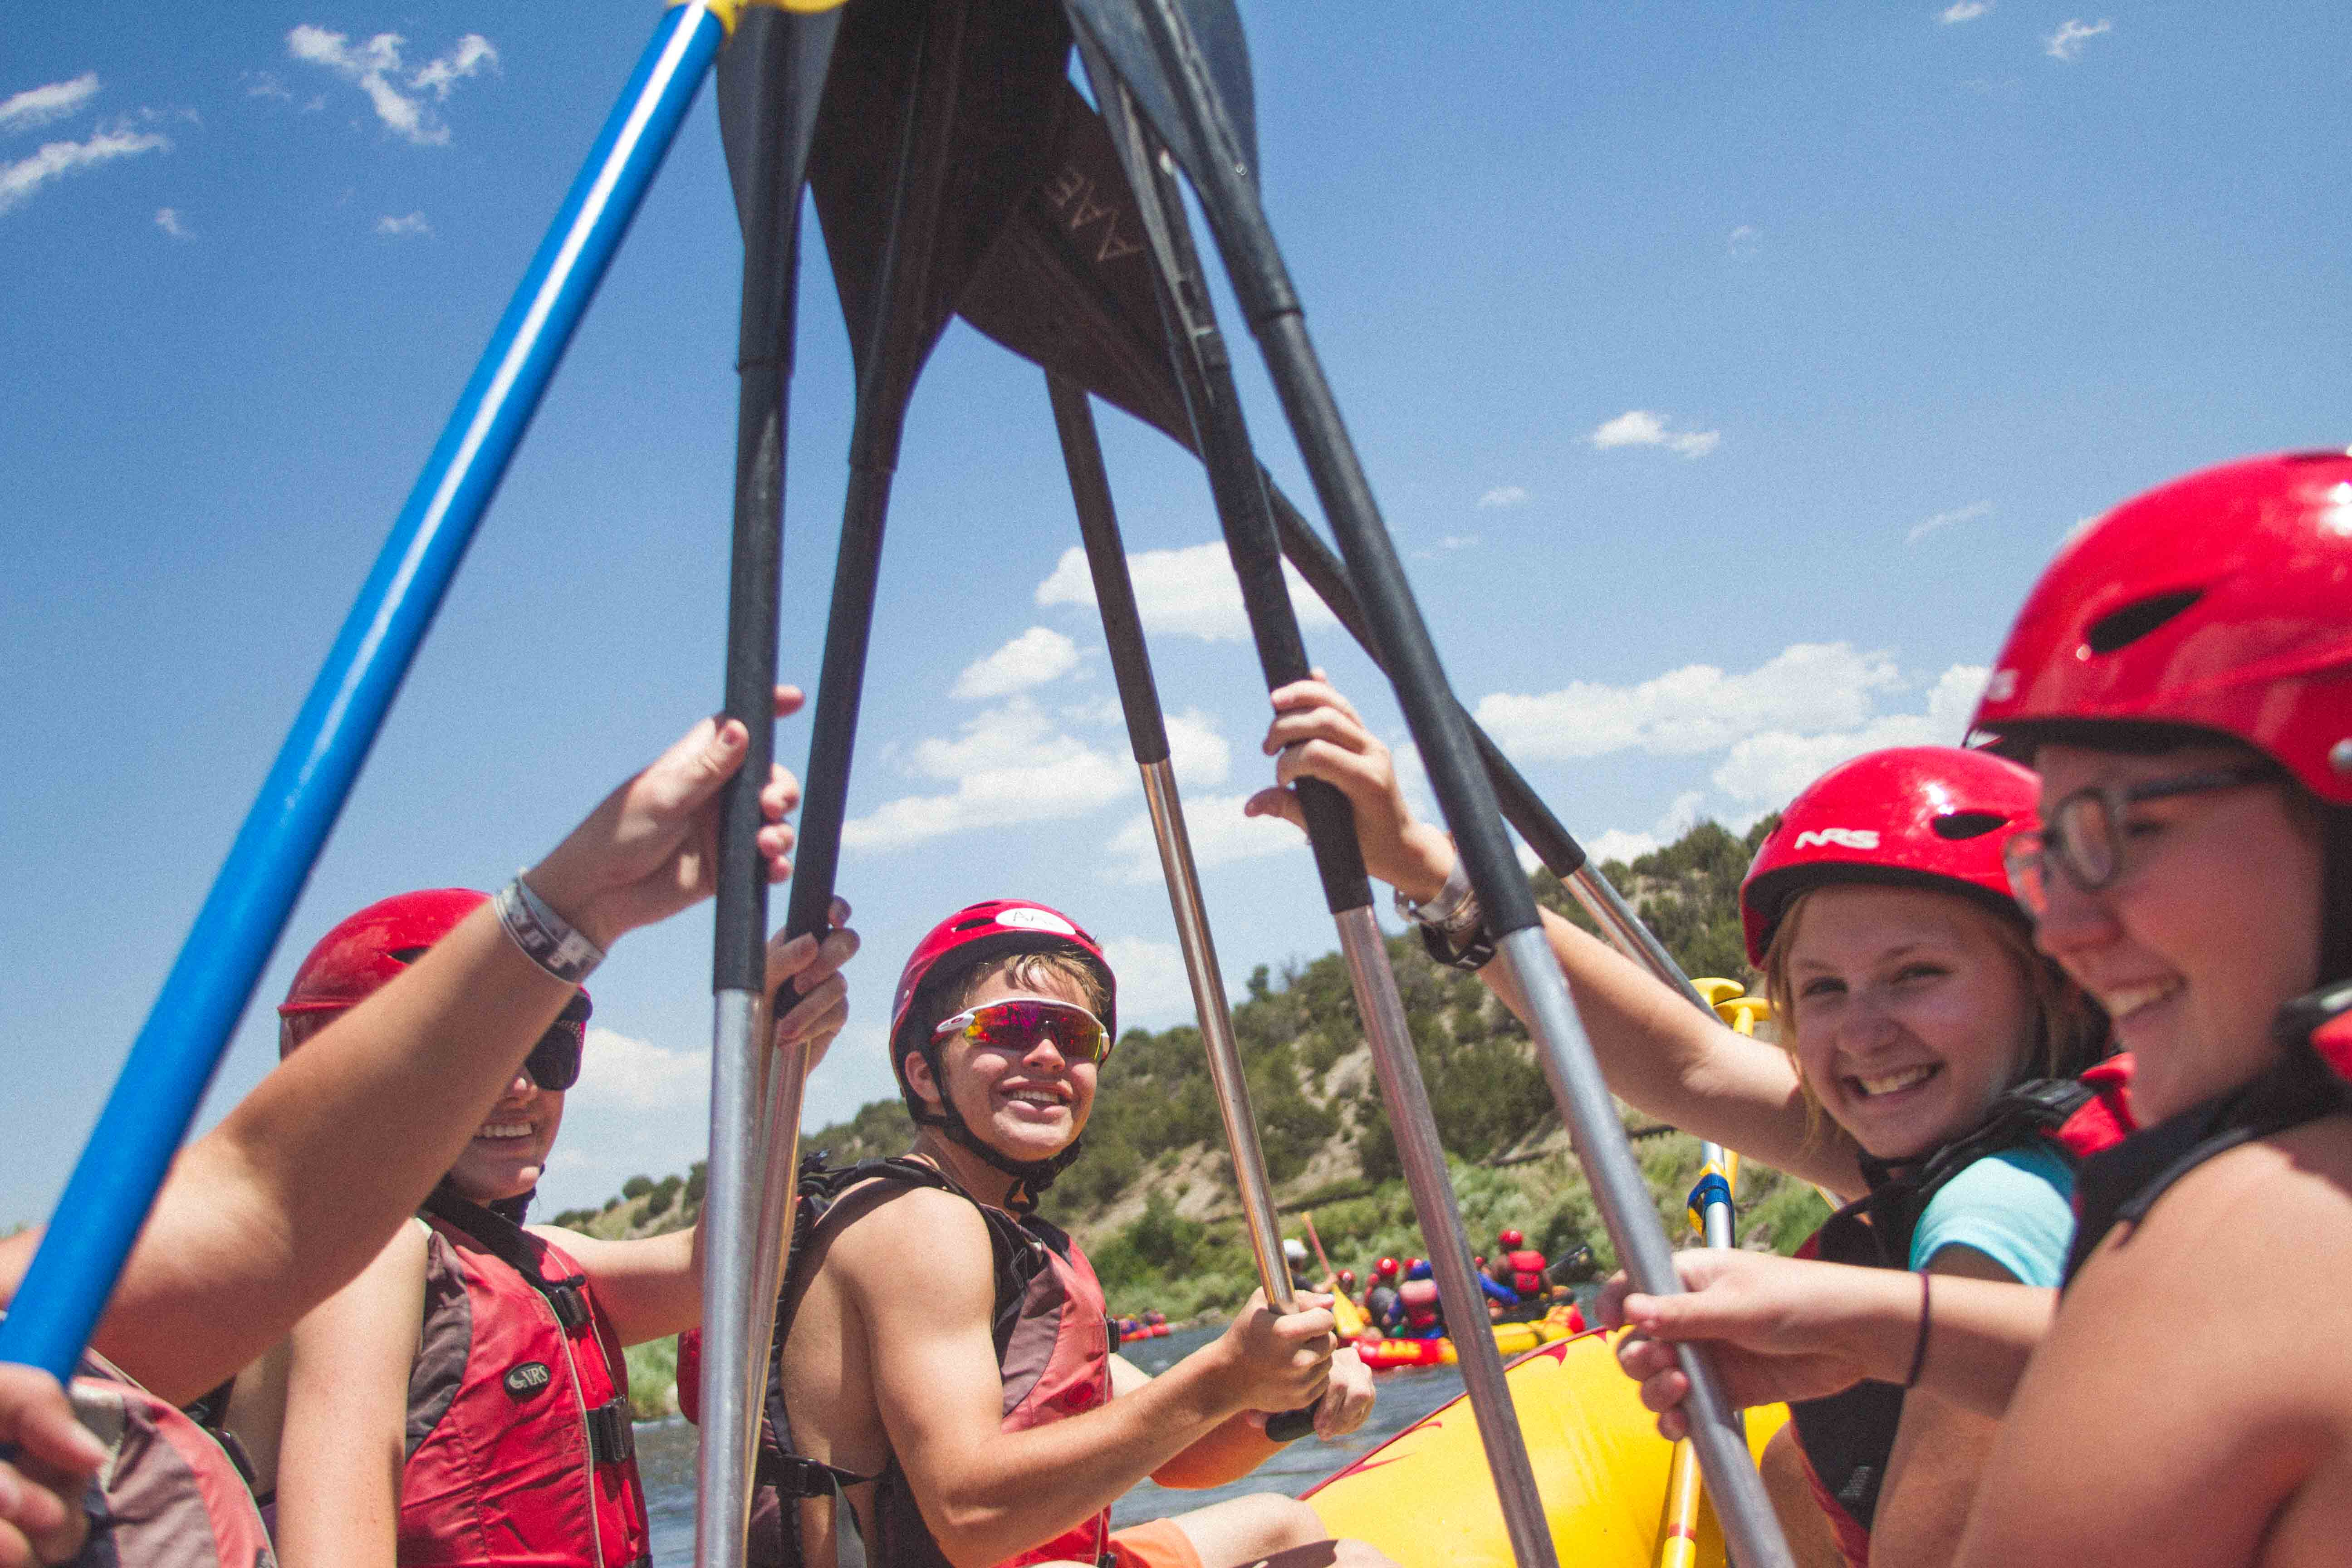 rafting as team building activity